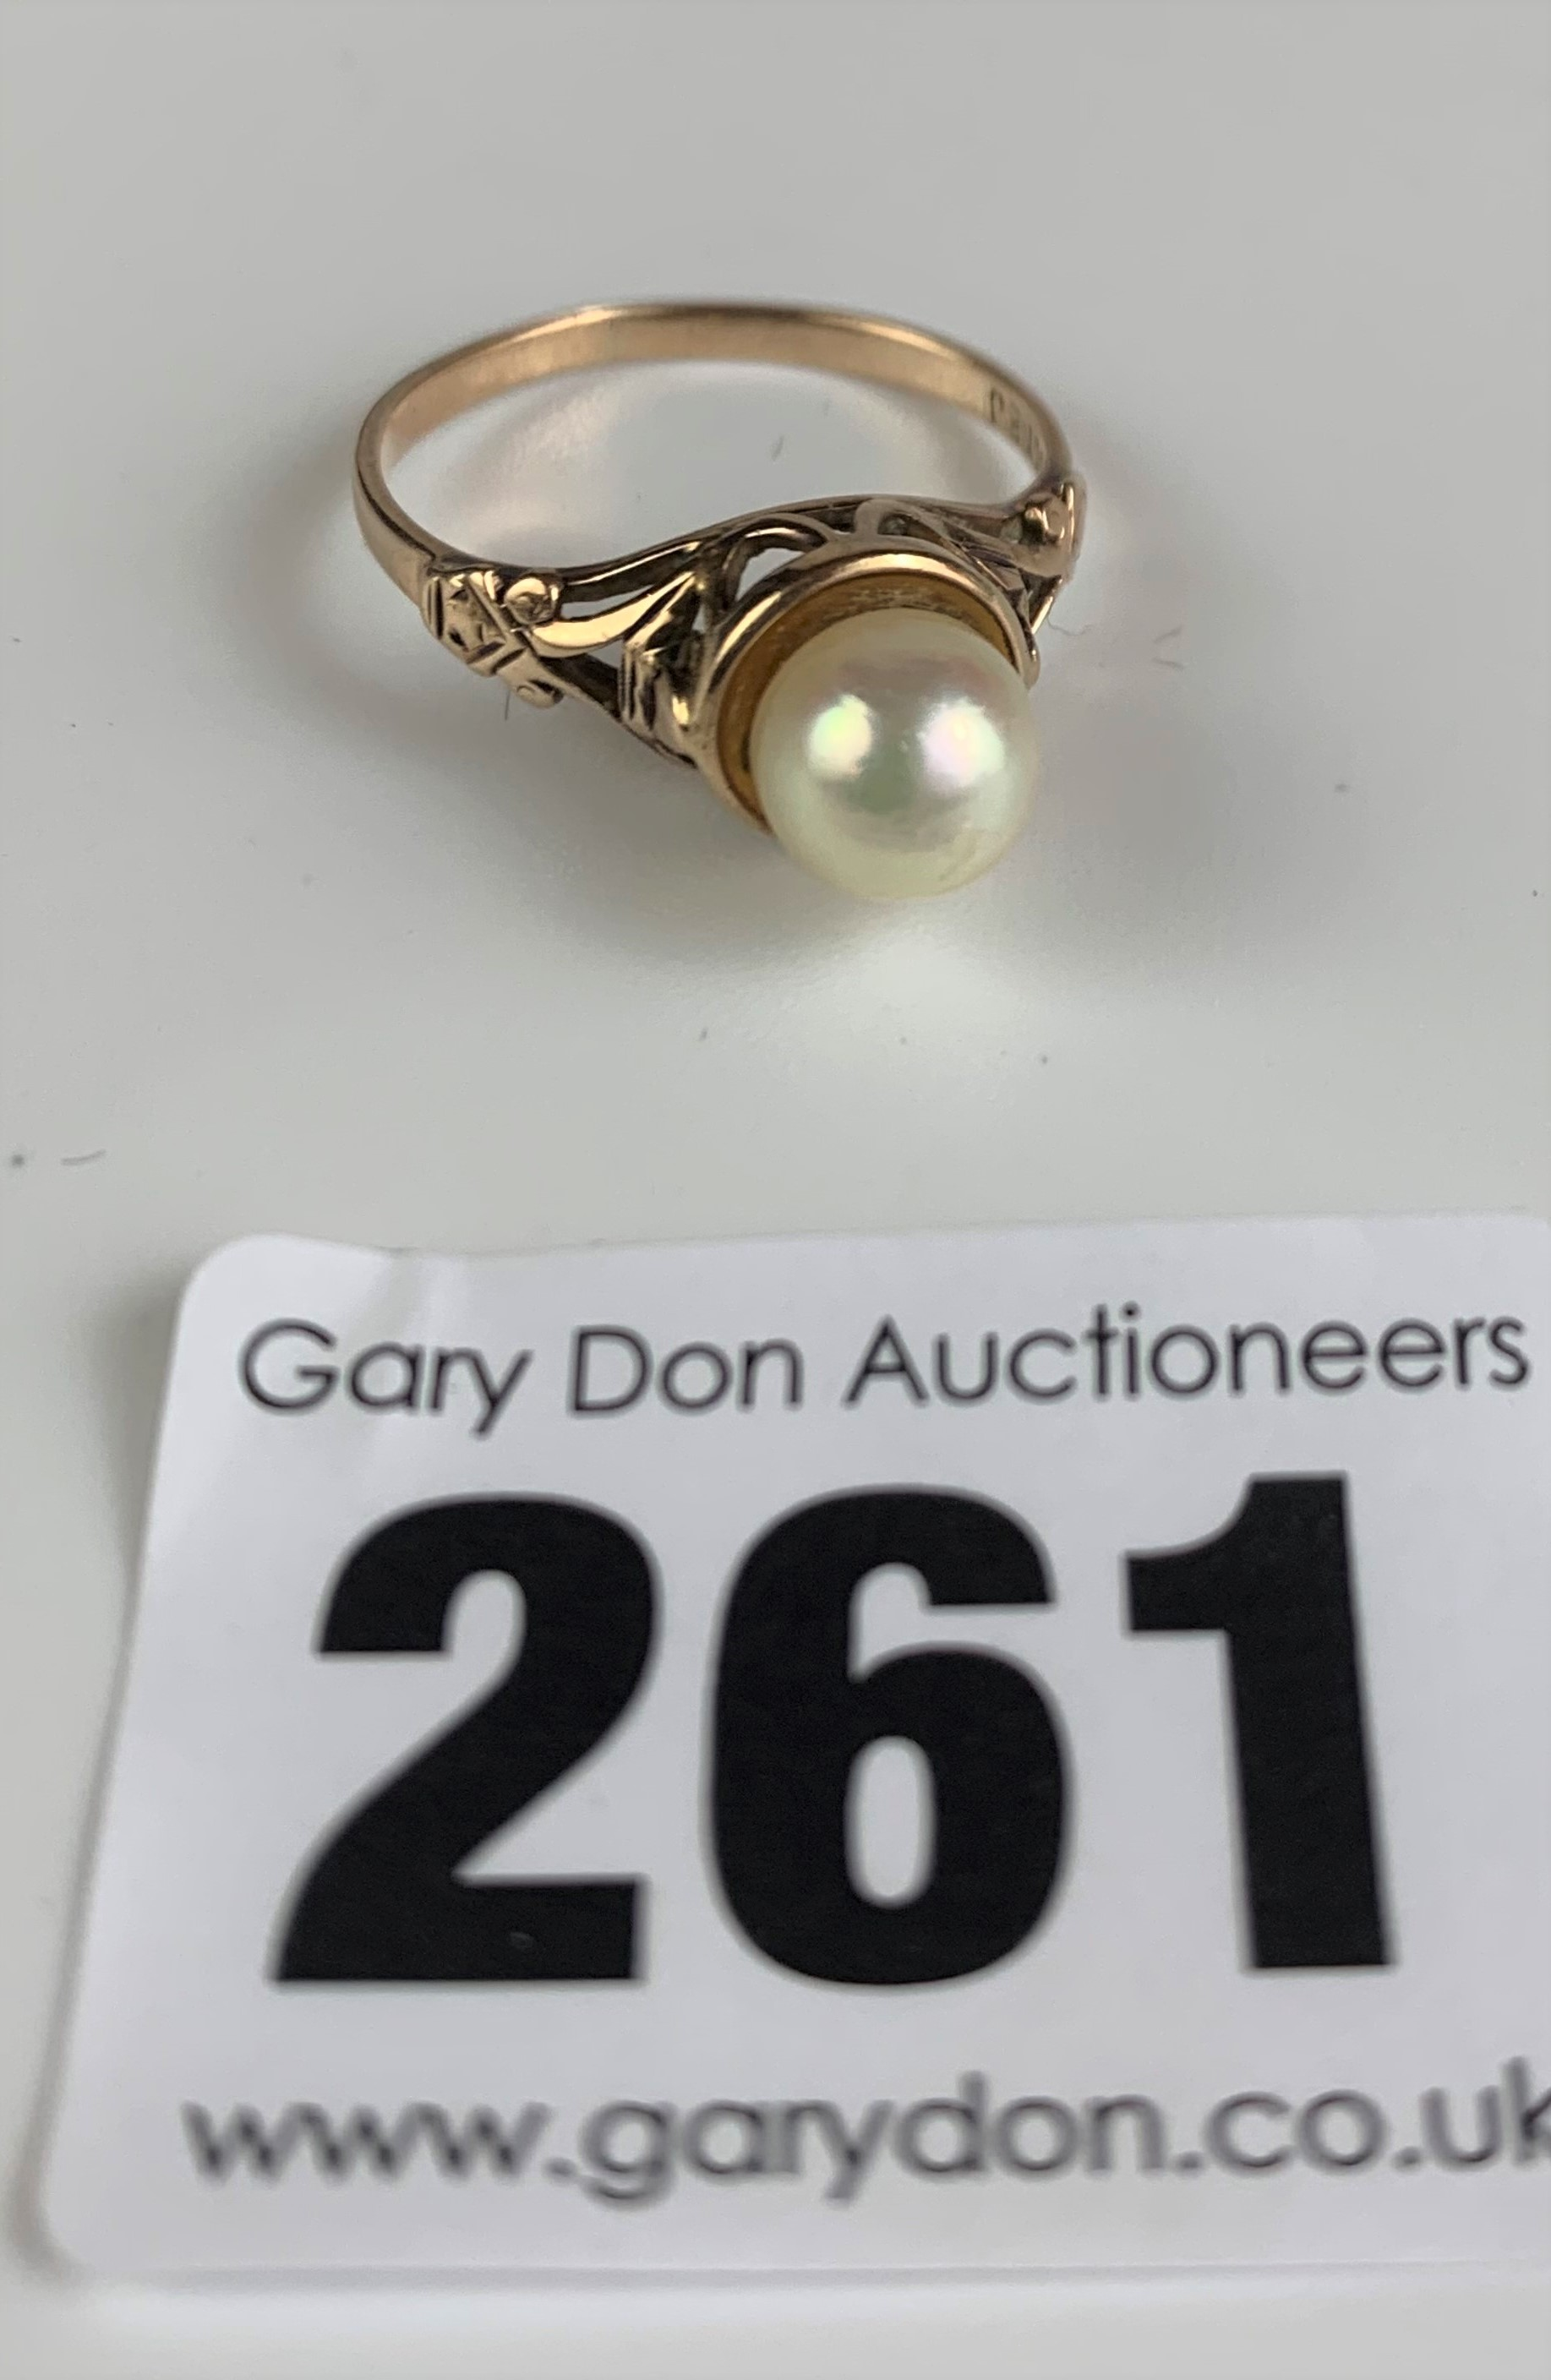 9k gold and pearl ring, size M, w: 2.4 gms - Image 3 of 6